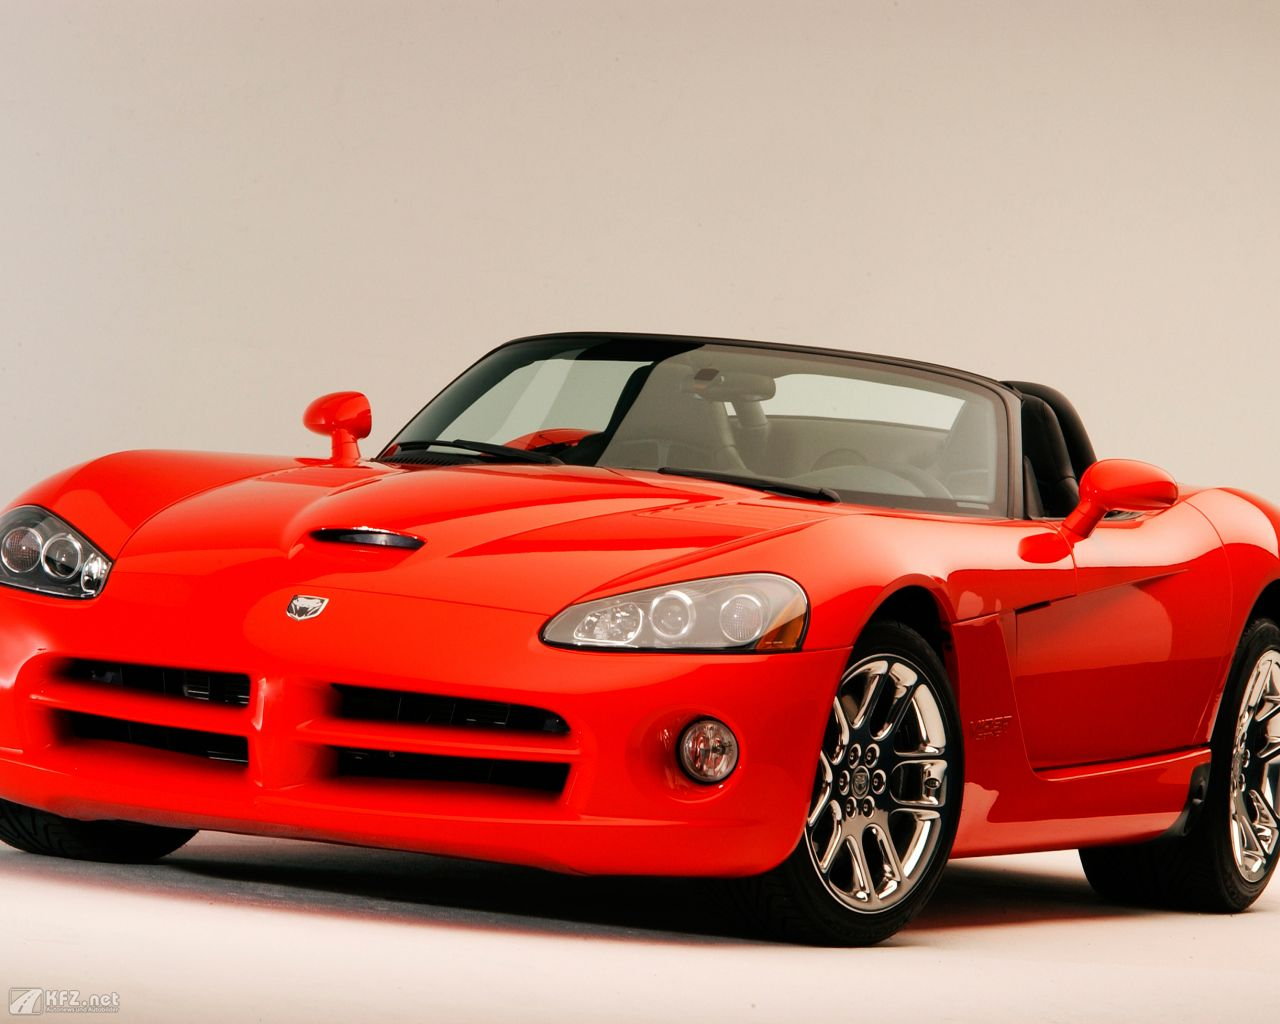 chrysler-dodge-viper-1280x1024-1